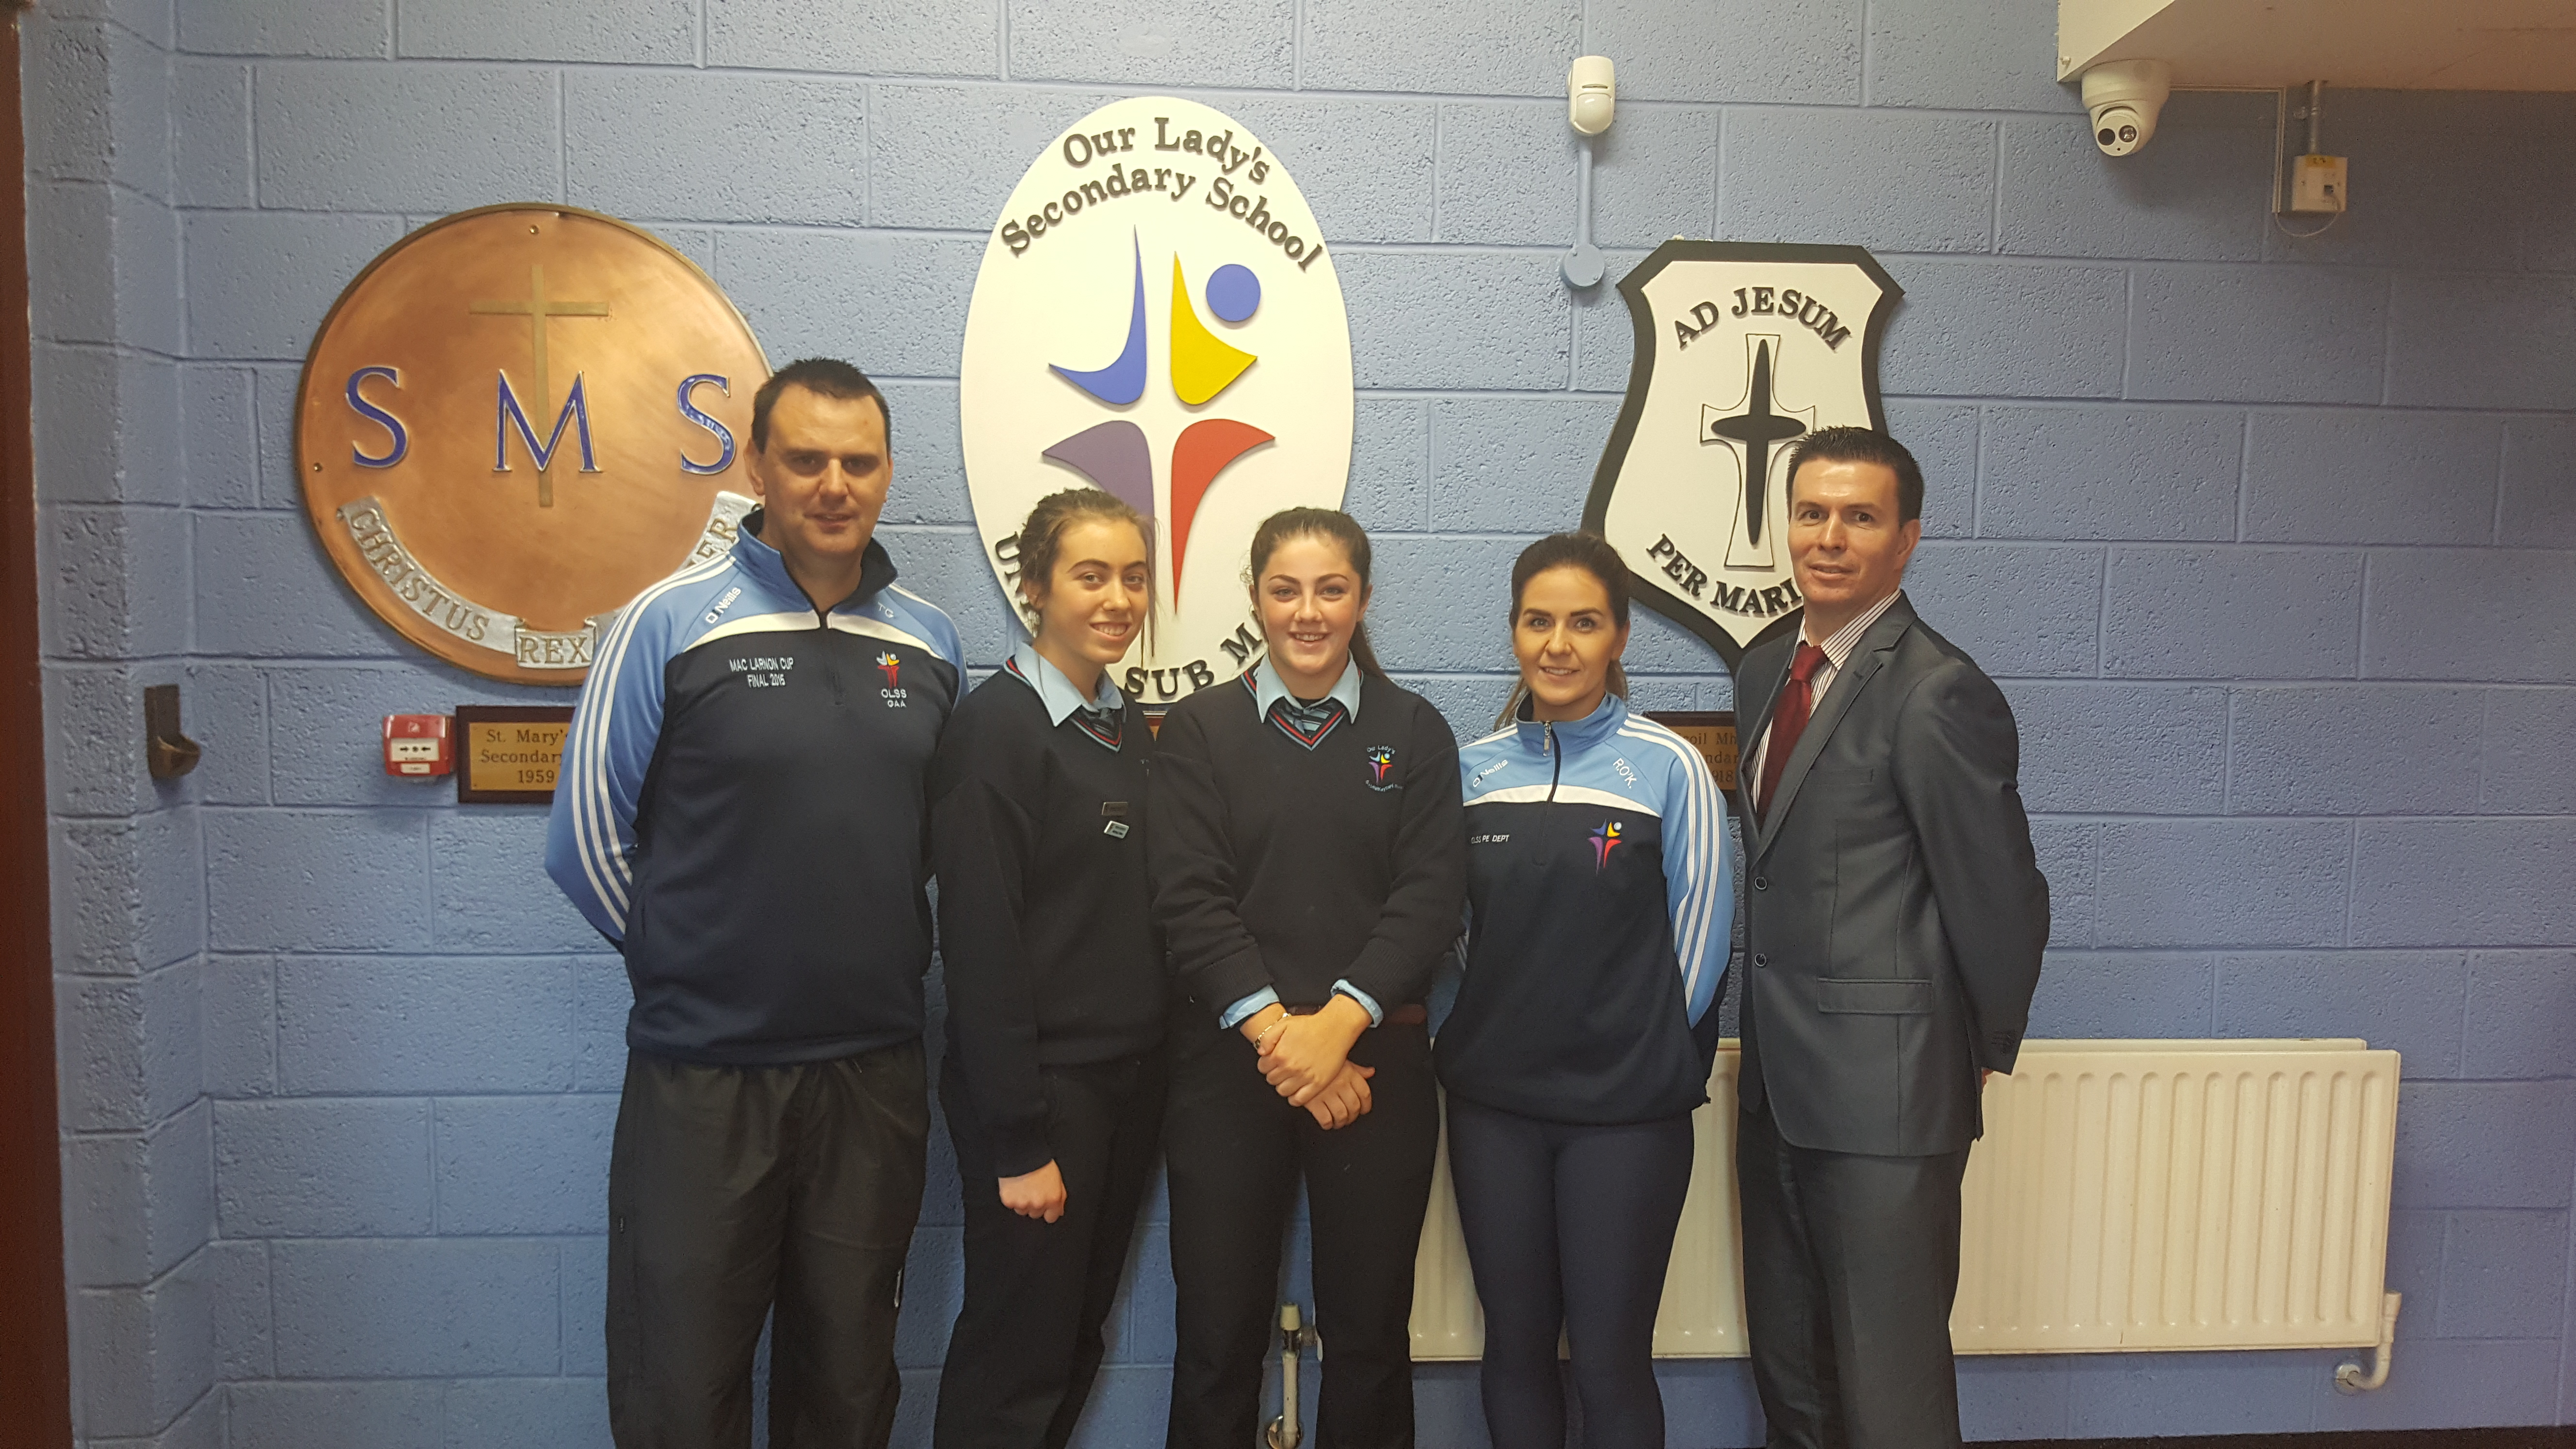 More All STAR success for Our Ladys Secondary School Castleblayney